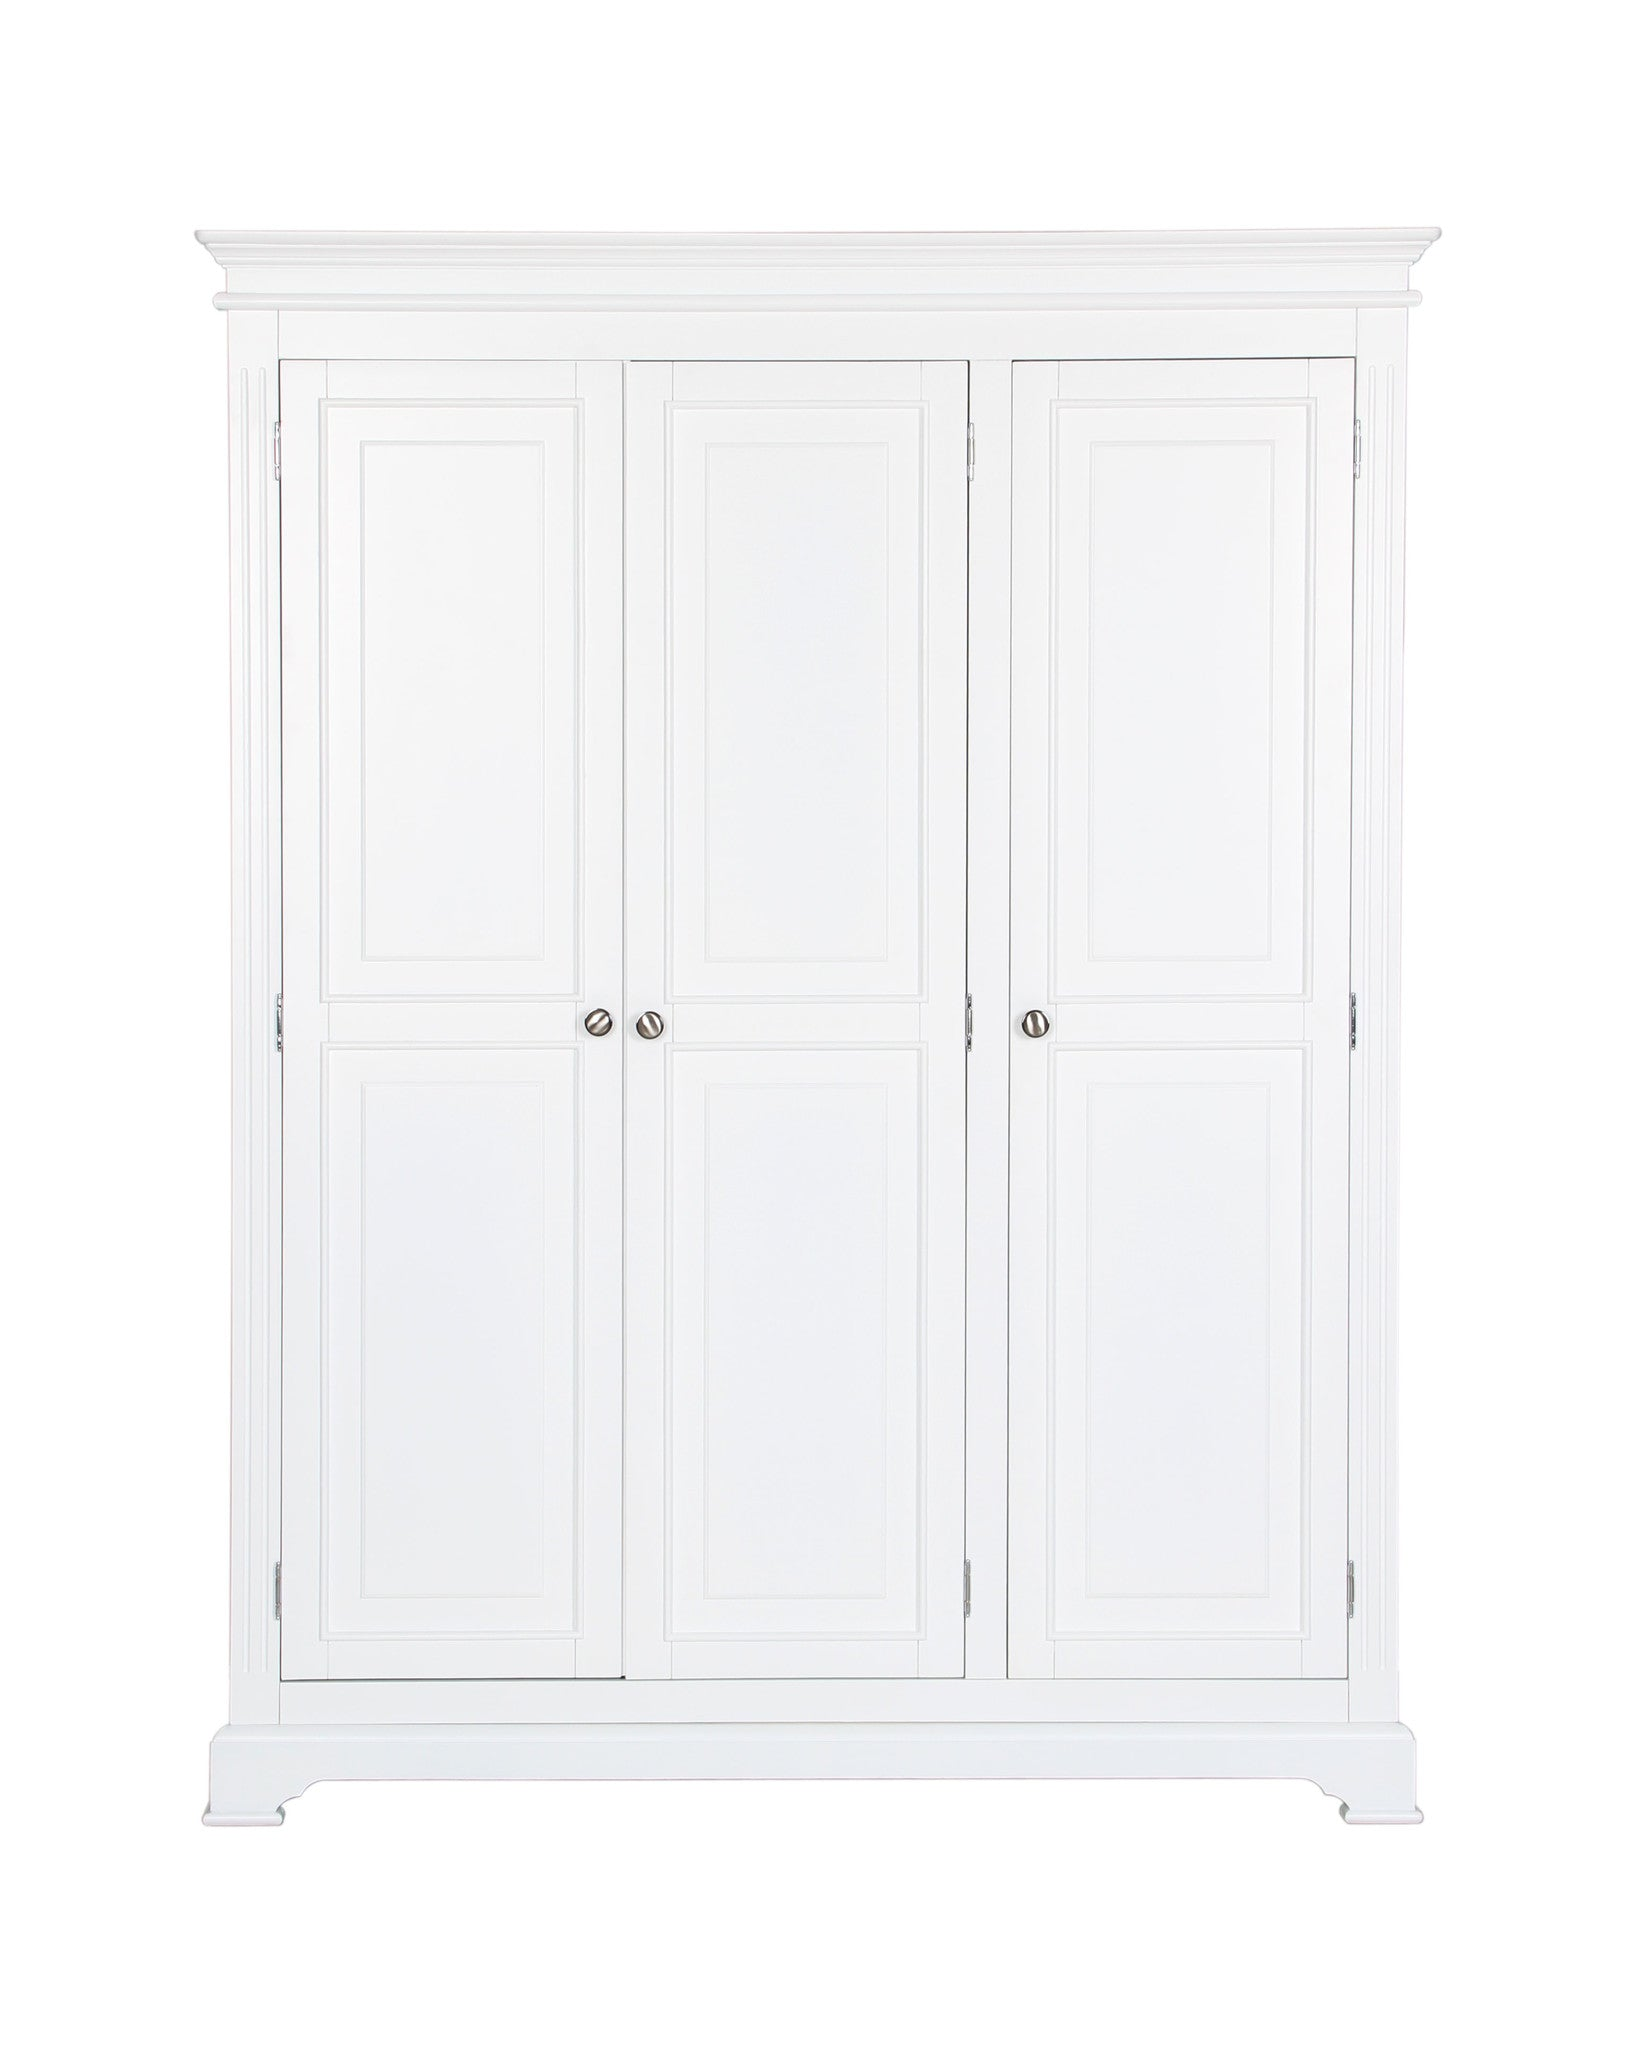 Painted White 3 door wardrobe by Cheshire Bedrooms